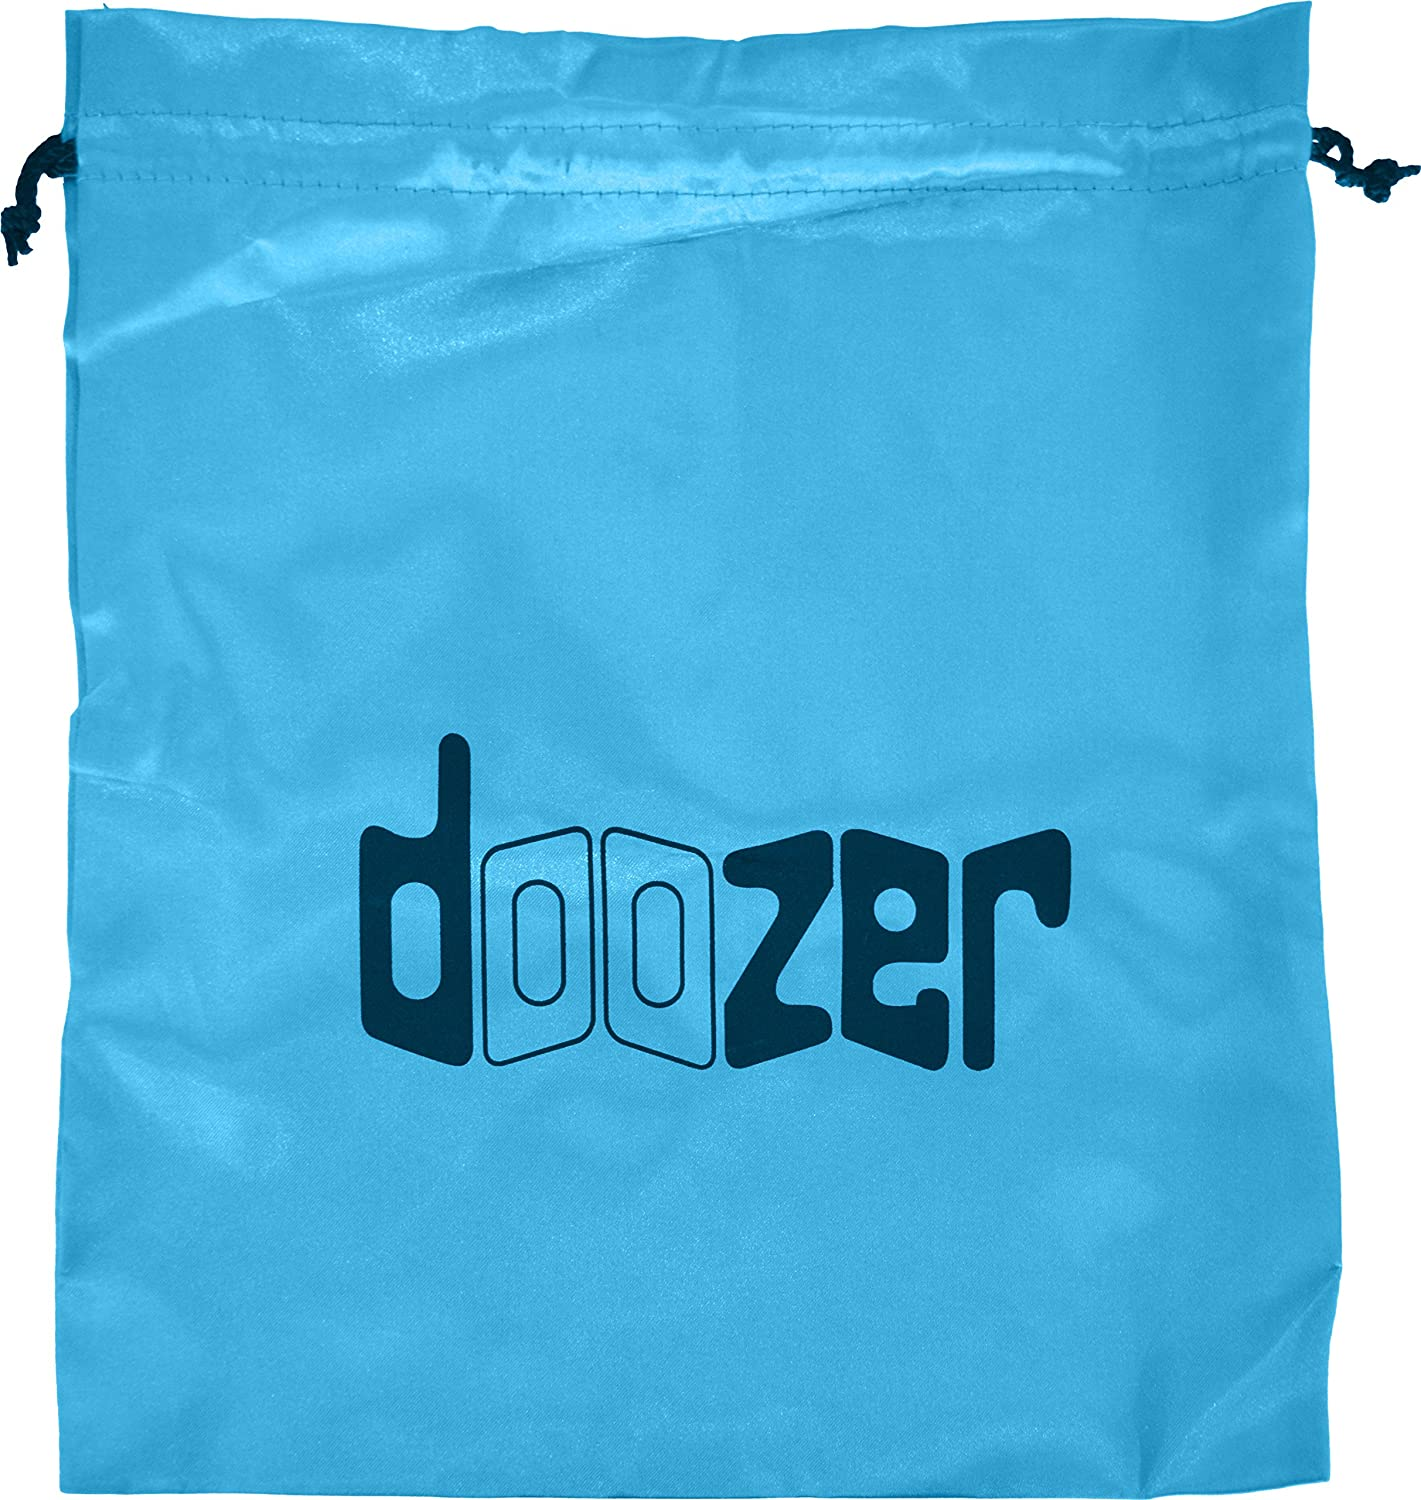 Amazon.com : Portable Shower + SPARE Battery + Bag - by Doozer - for ...